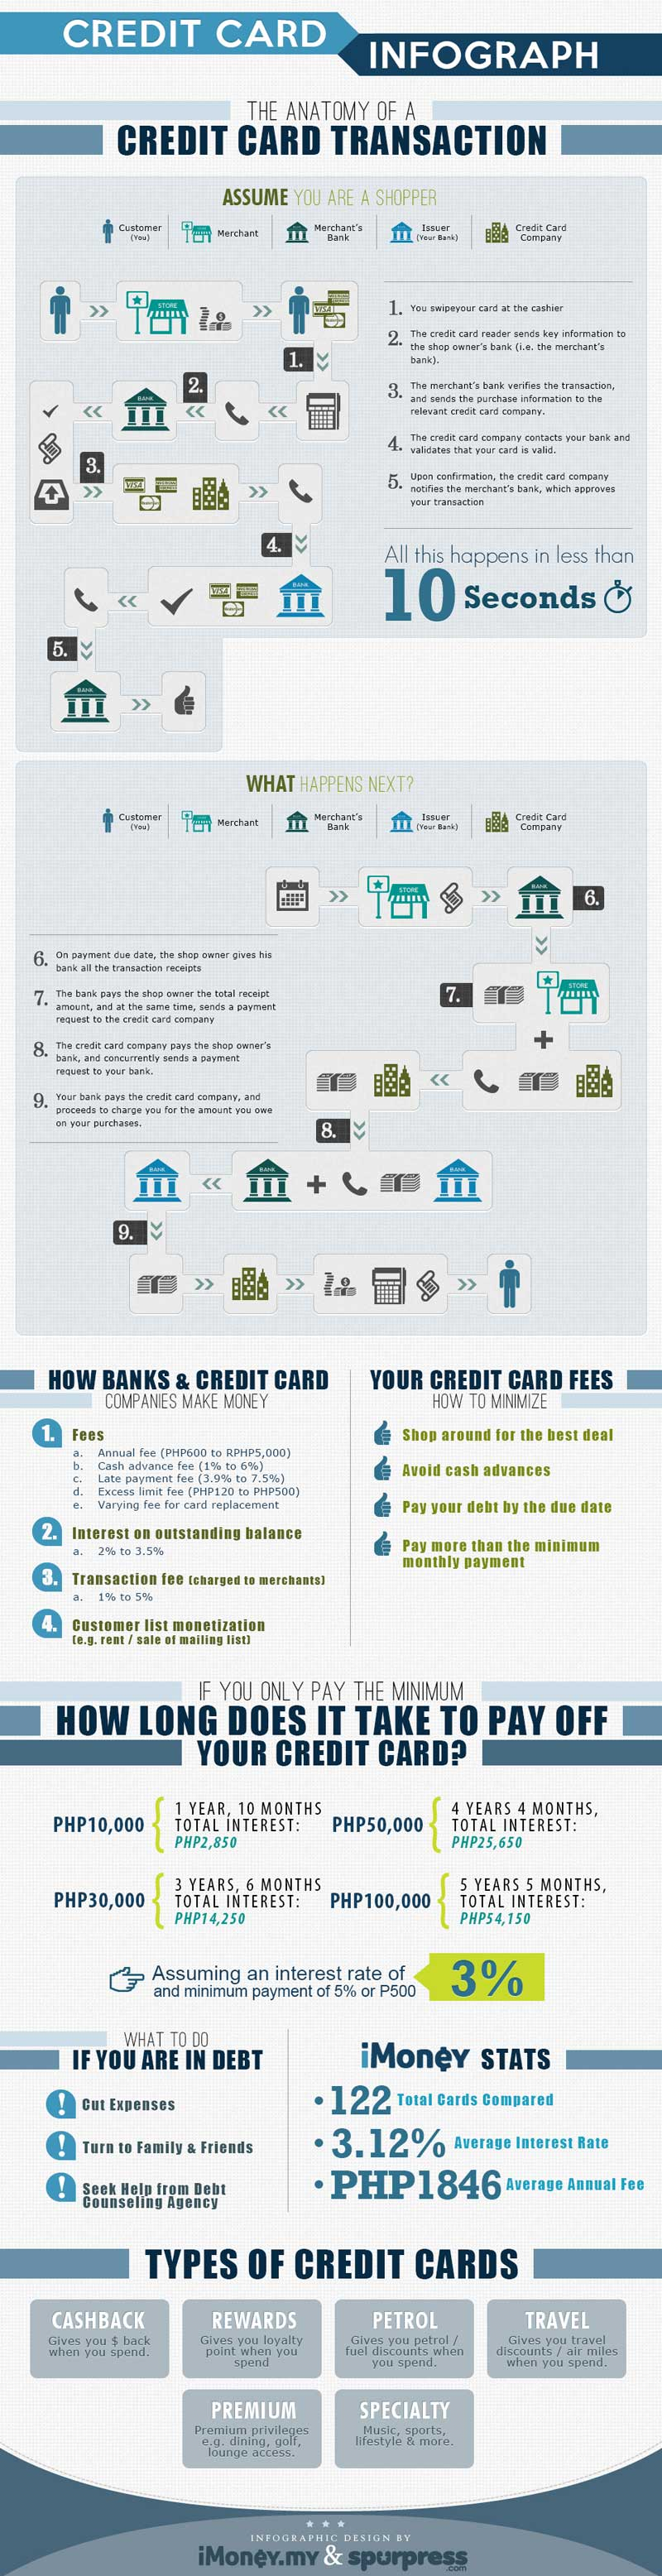 anatomy of credit card transaction infographic